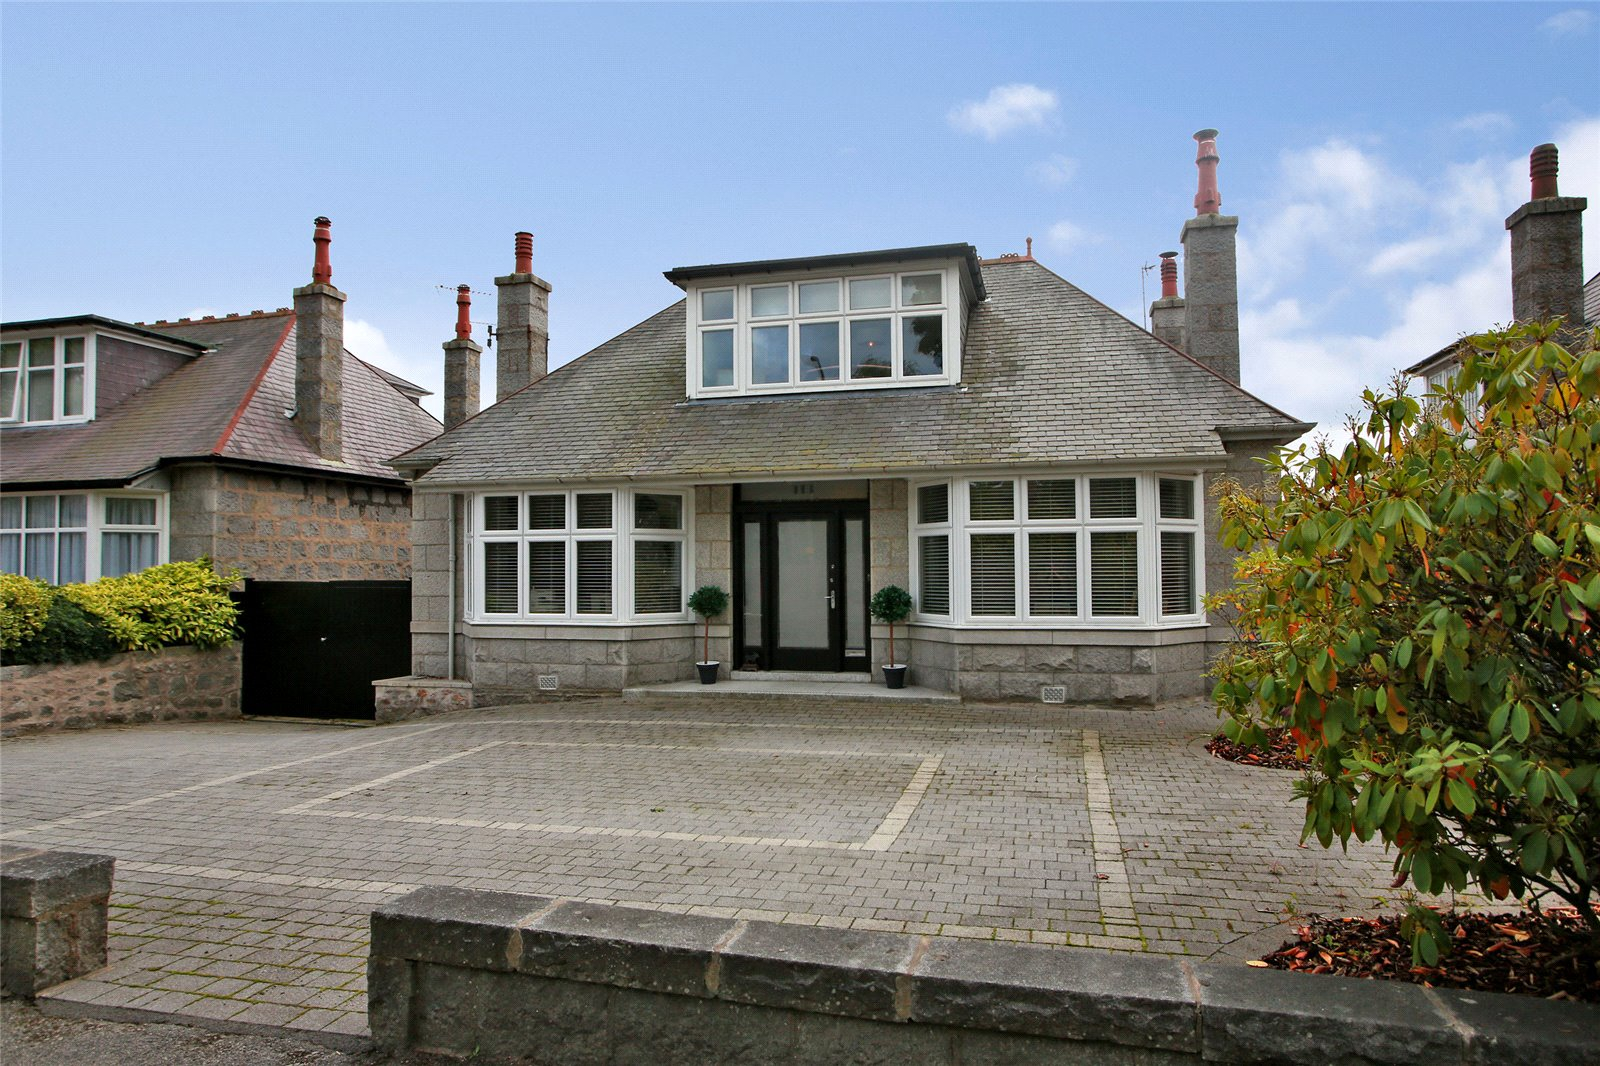 Property perfection: Upgraded family home in enviable Aberdeen location